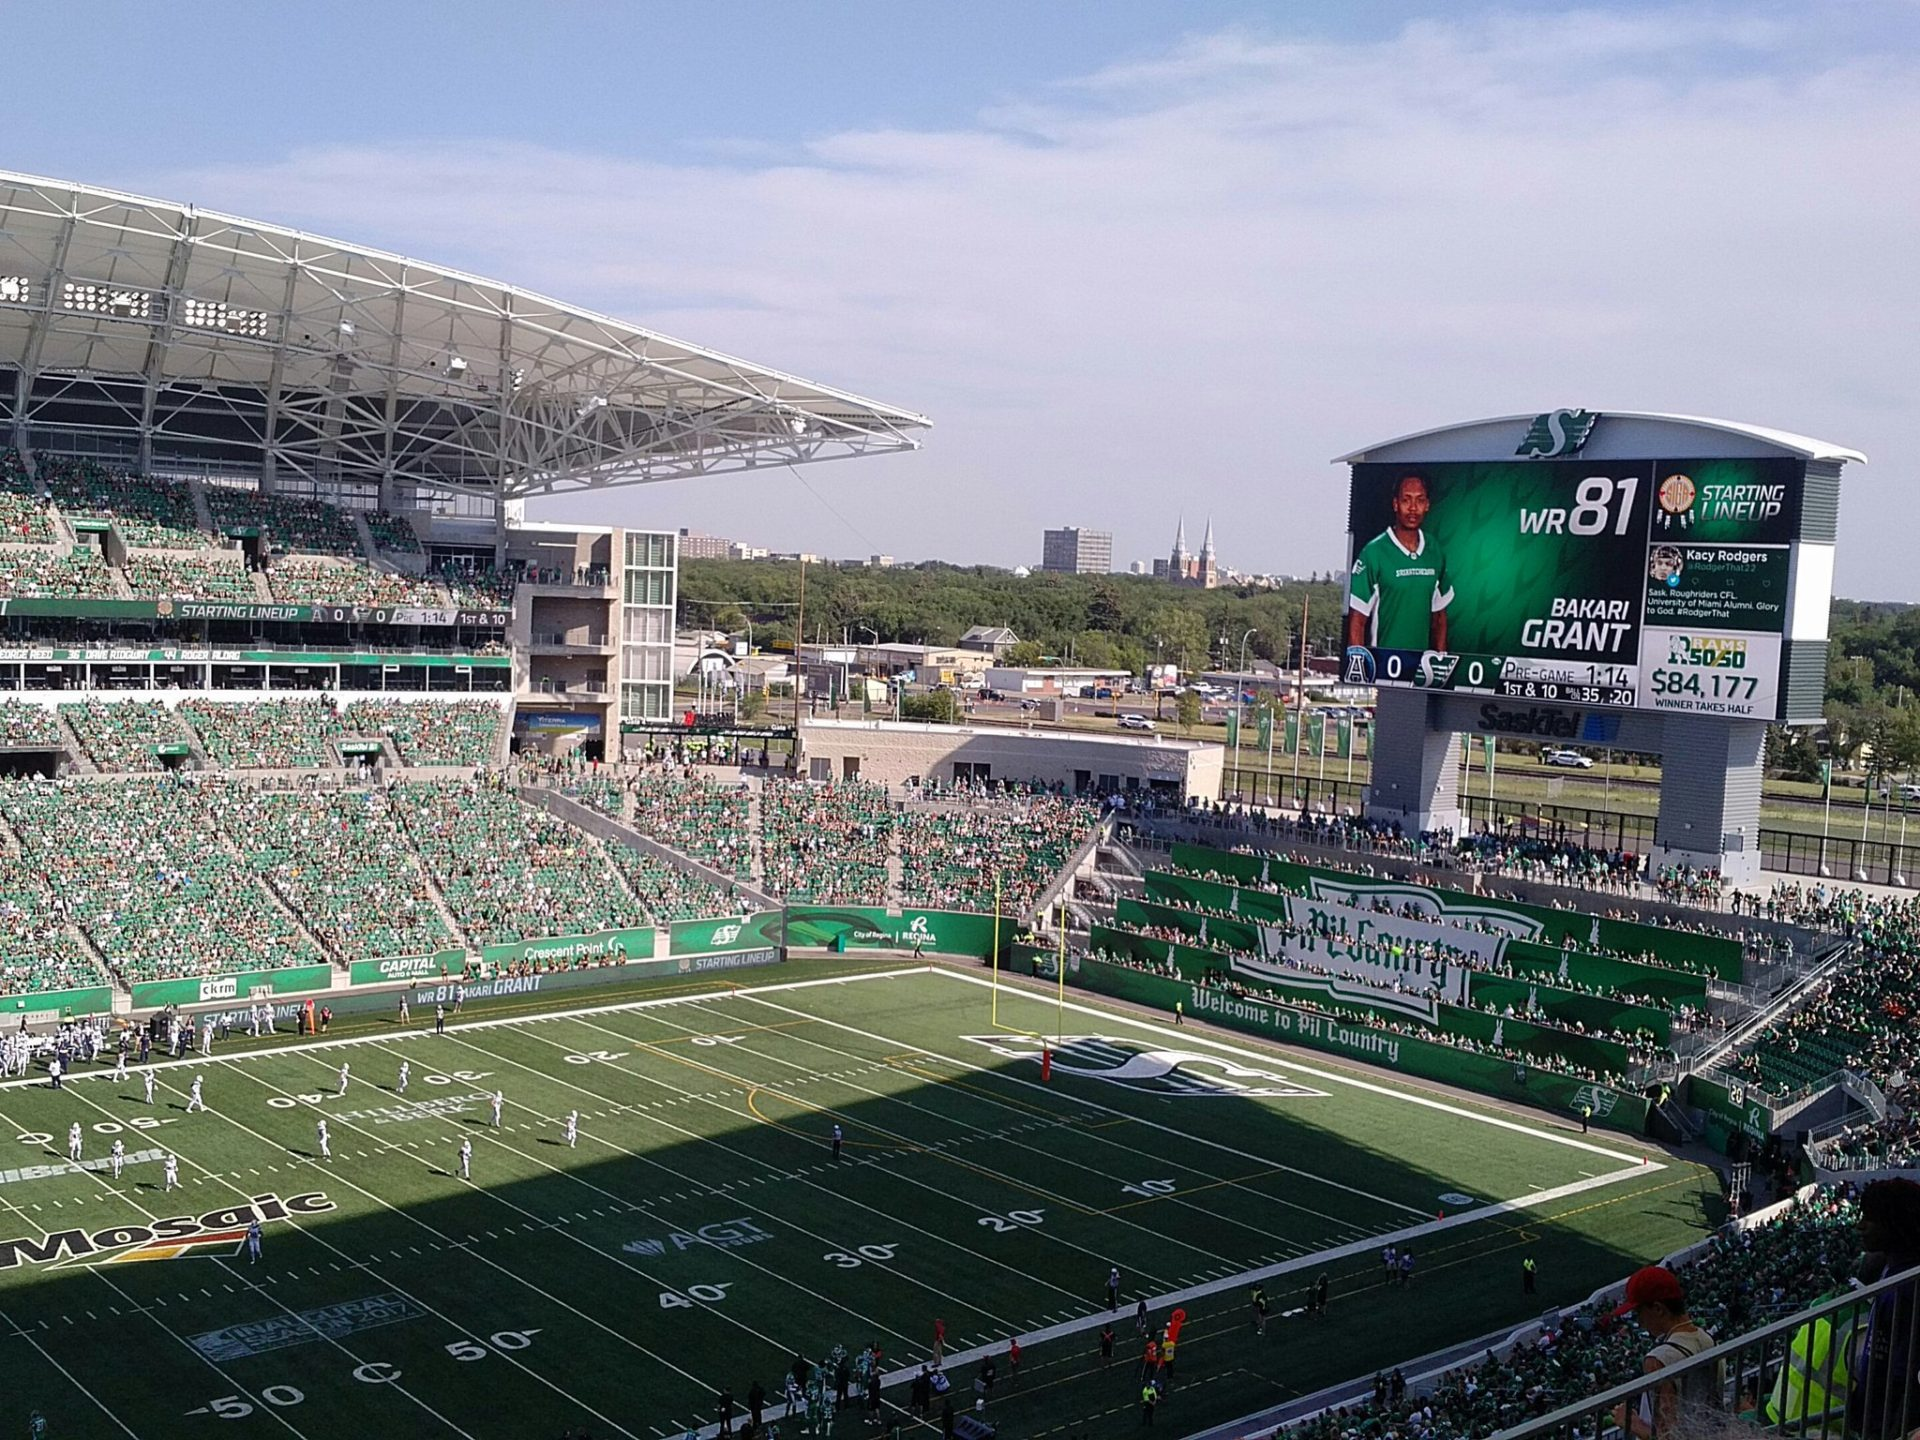 CFL, Canadian Football League, AJP, Anthony James Partners, AV Consulting, Control Room, Video Replay, Broadcast Cabling, Infrastructure Cabling, IPTV, CATV, Distributed TV, POS, Wi-Fi, Wifi, High Definition, LED Scoreboard, LED Video, LED Videoboard